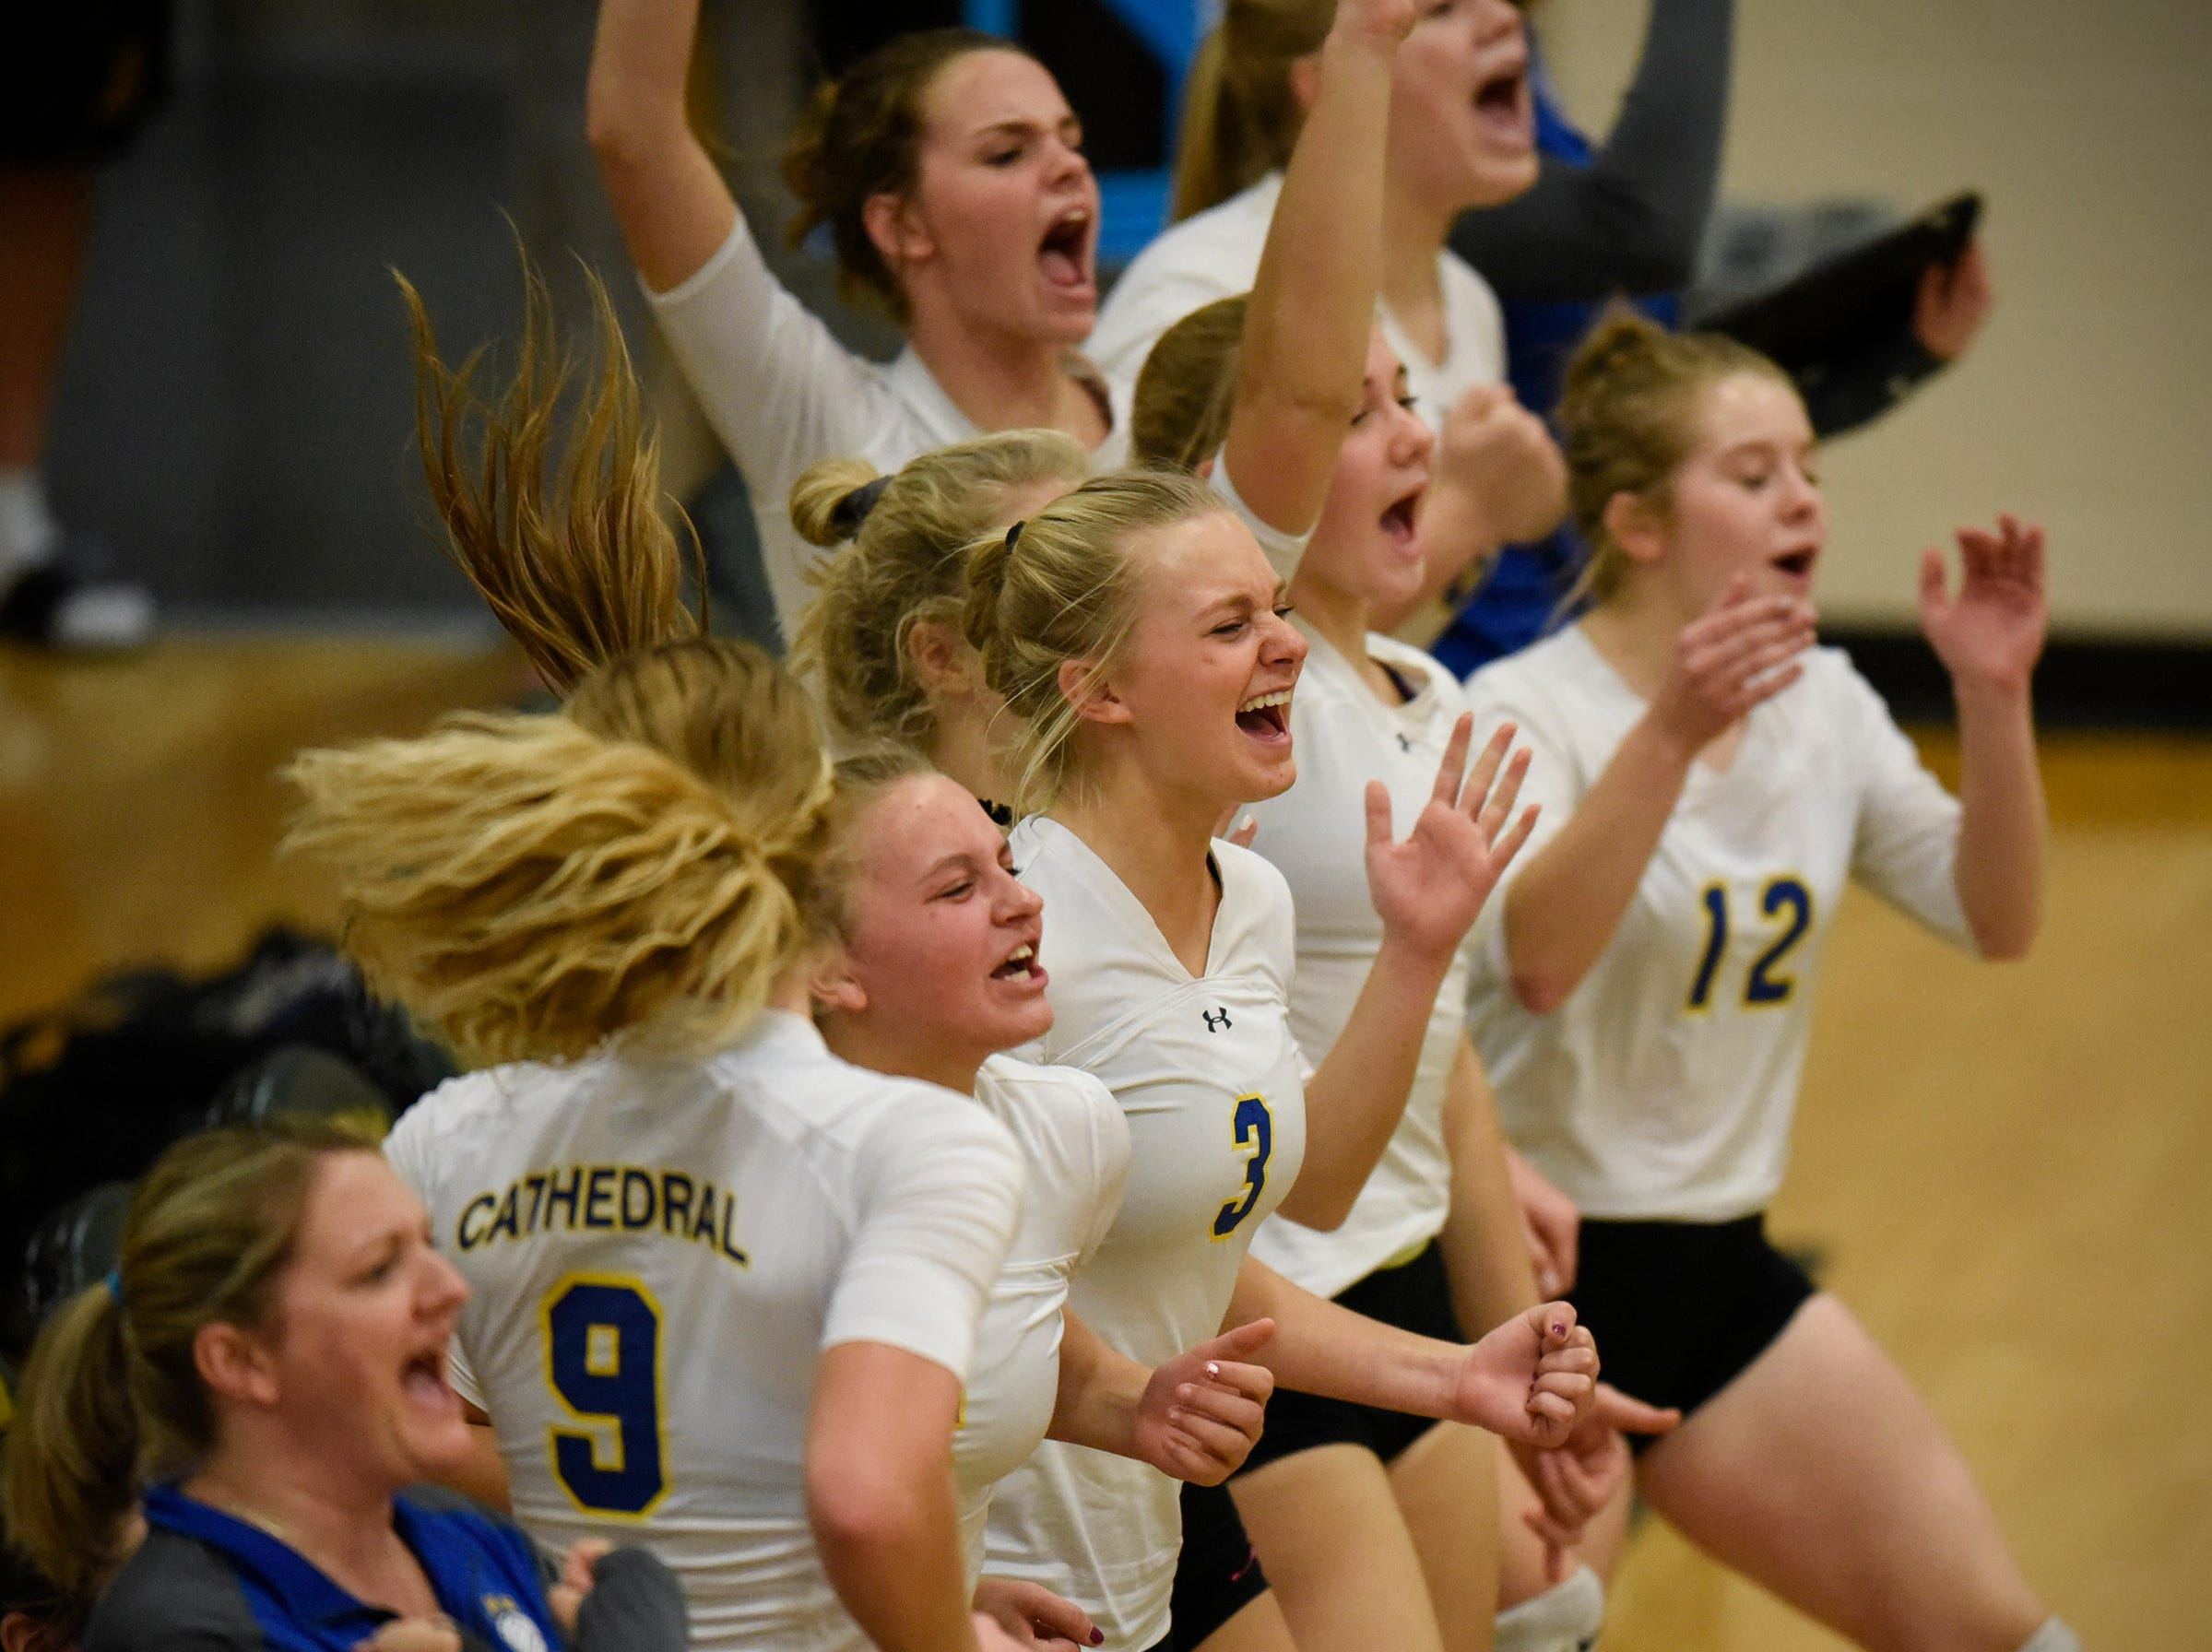 Cathedral players celebrate a point during the Section 6-2A volleyball semifinals Thursday, Nov. 1, at Sauk Rapids-Rice High School.